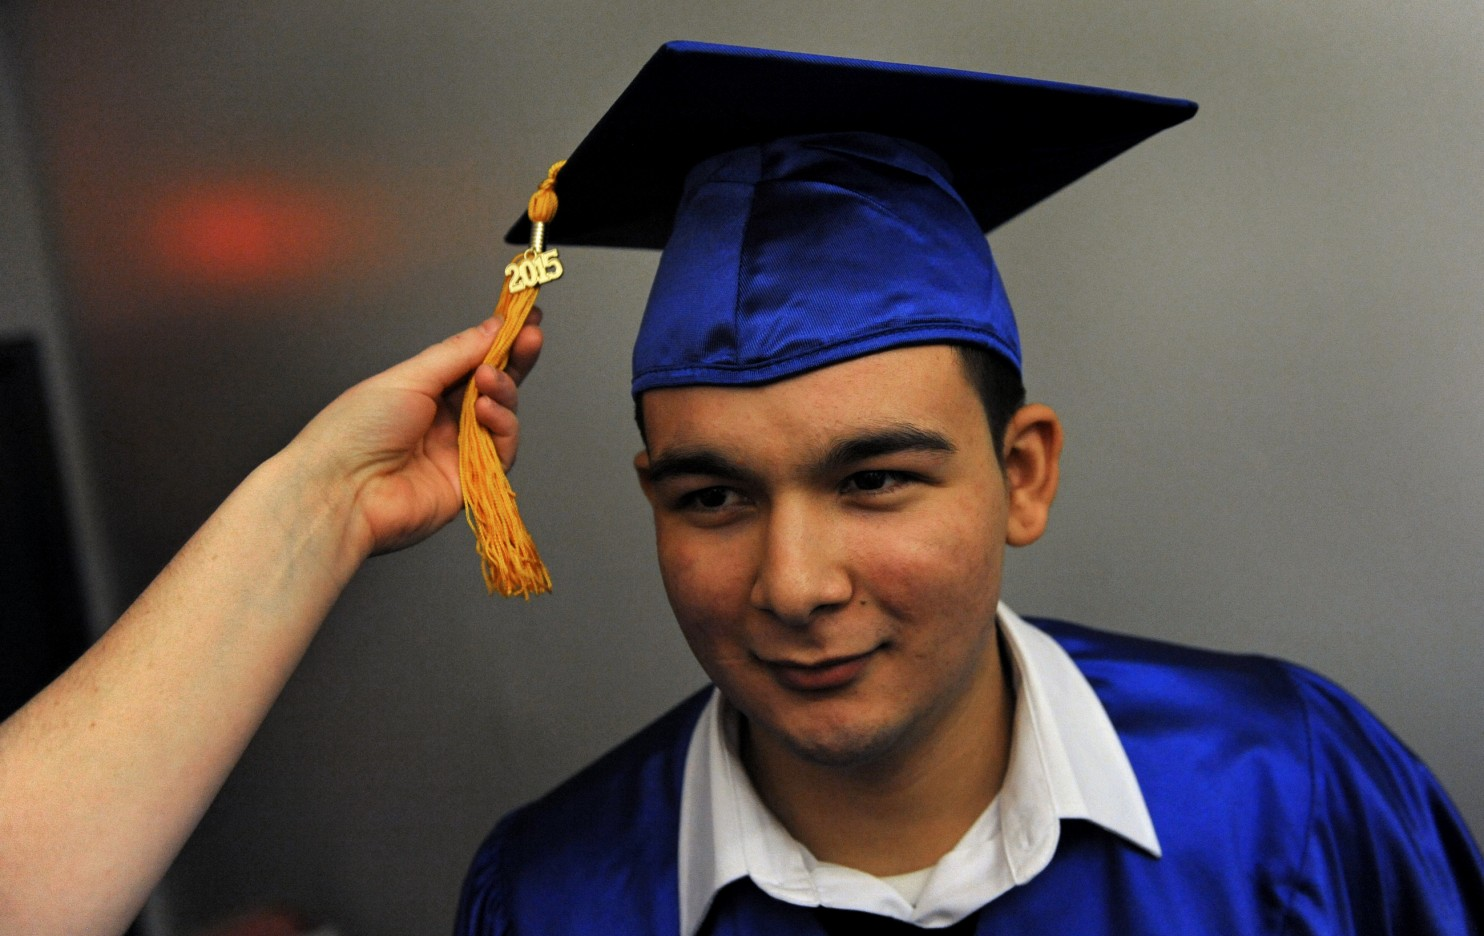 Next Step grad Guillermo Romero plans to go on to college. Adjusting his tassel is Lily Harris, a staffer at Next Step. The District is considering a proposal to give diplomas to GED recipients. (Michael S. Williamson/The Washington Post)